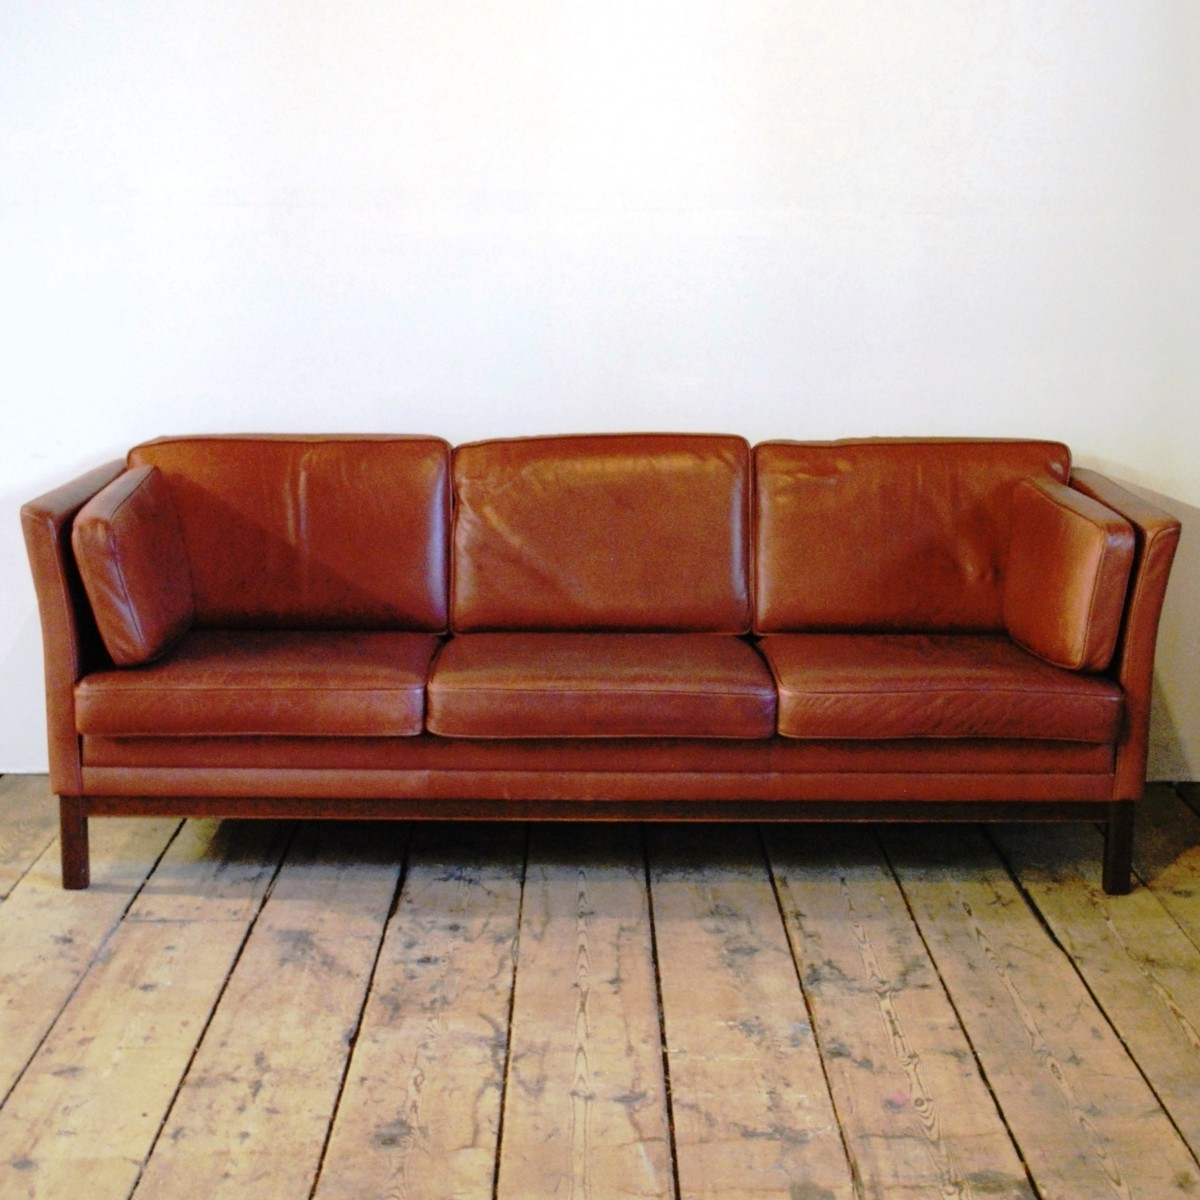 98246 A Mid Century Three Seat Sofa In Full Grain Leather within Widely used Full Grain Leather Sofas